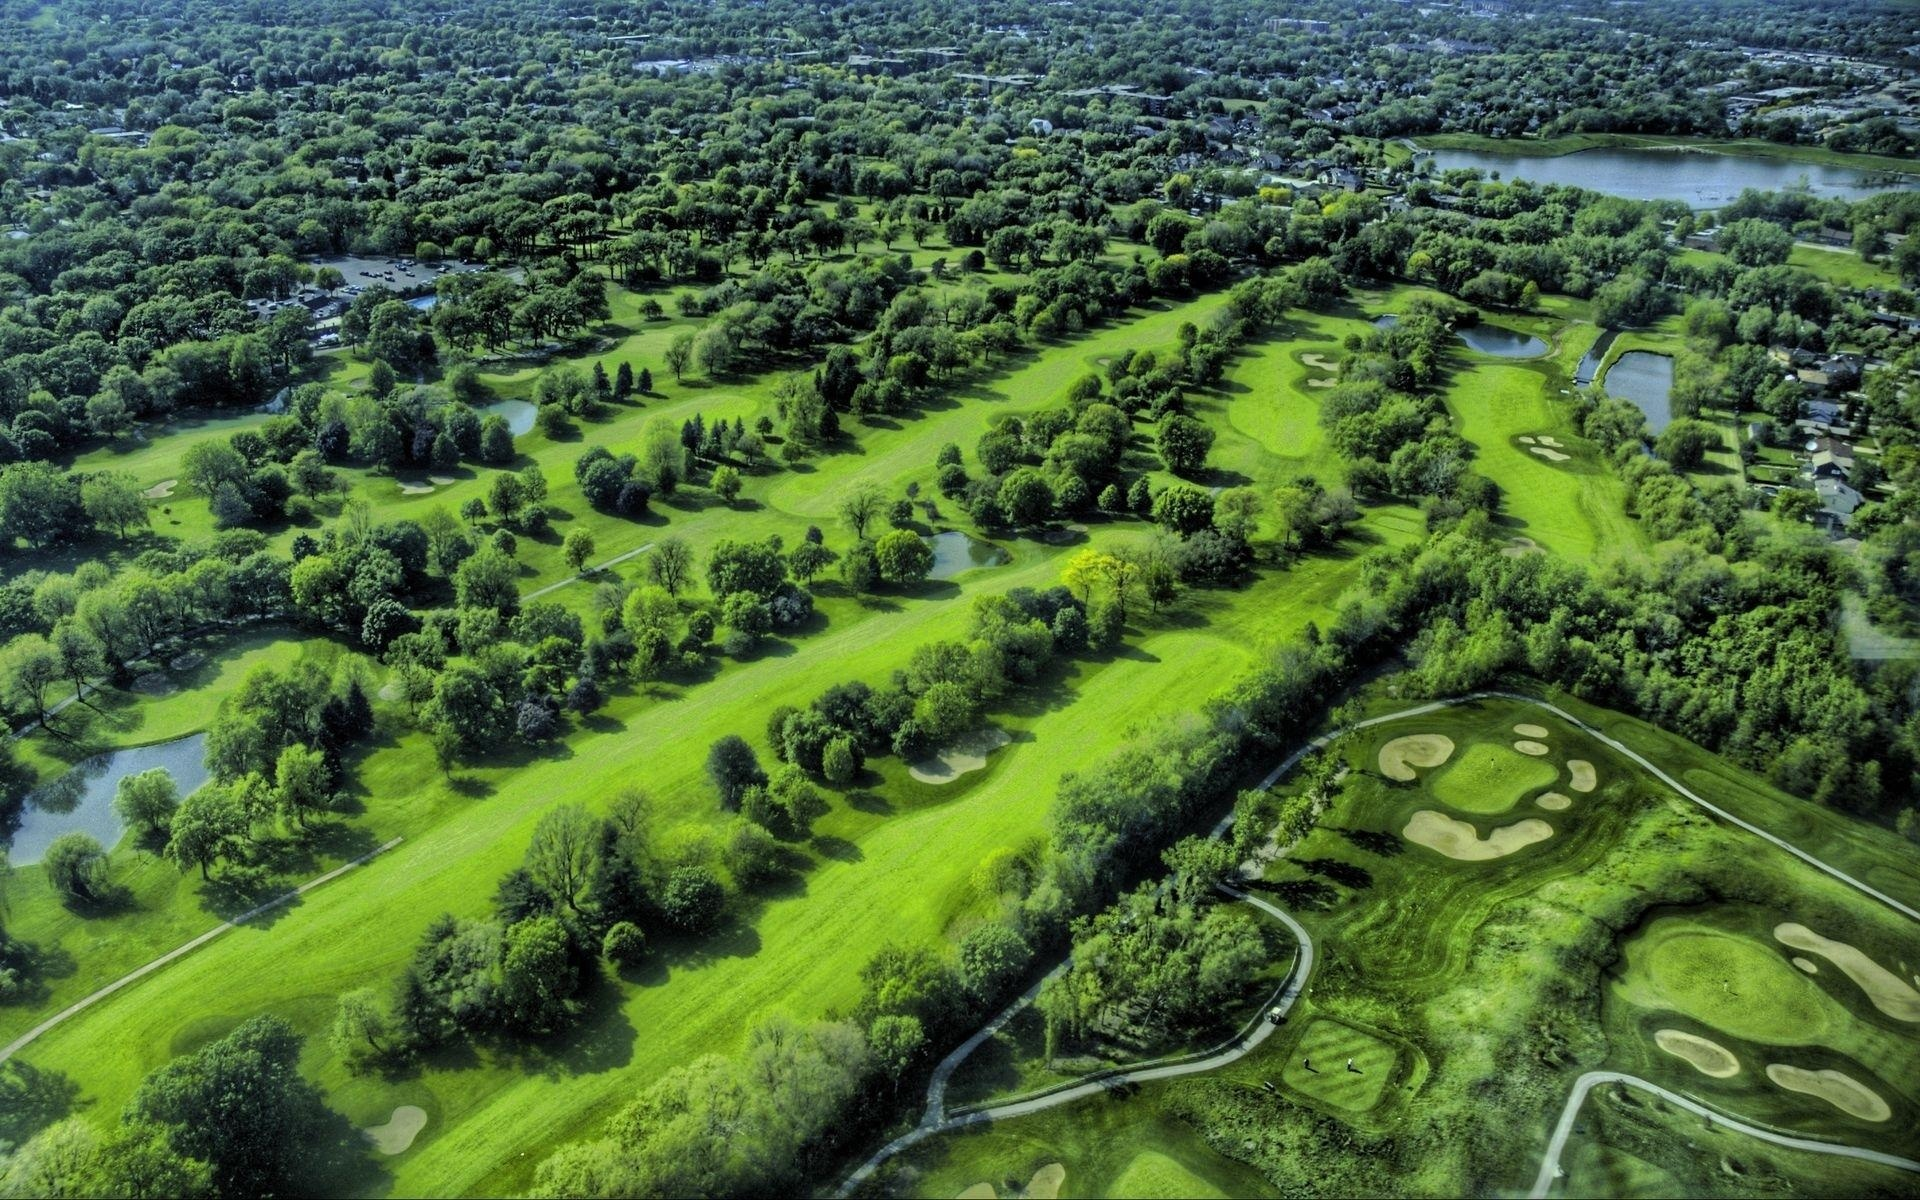 Golf course hd wallpaper background image 1920x1200 id 387390 wallpaper abyss - Golf wallpaper hd ...